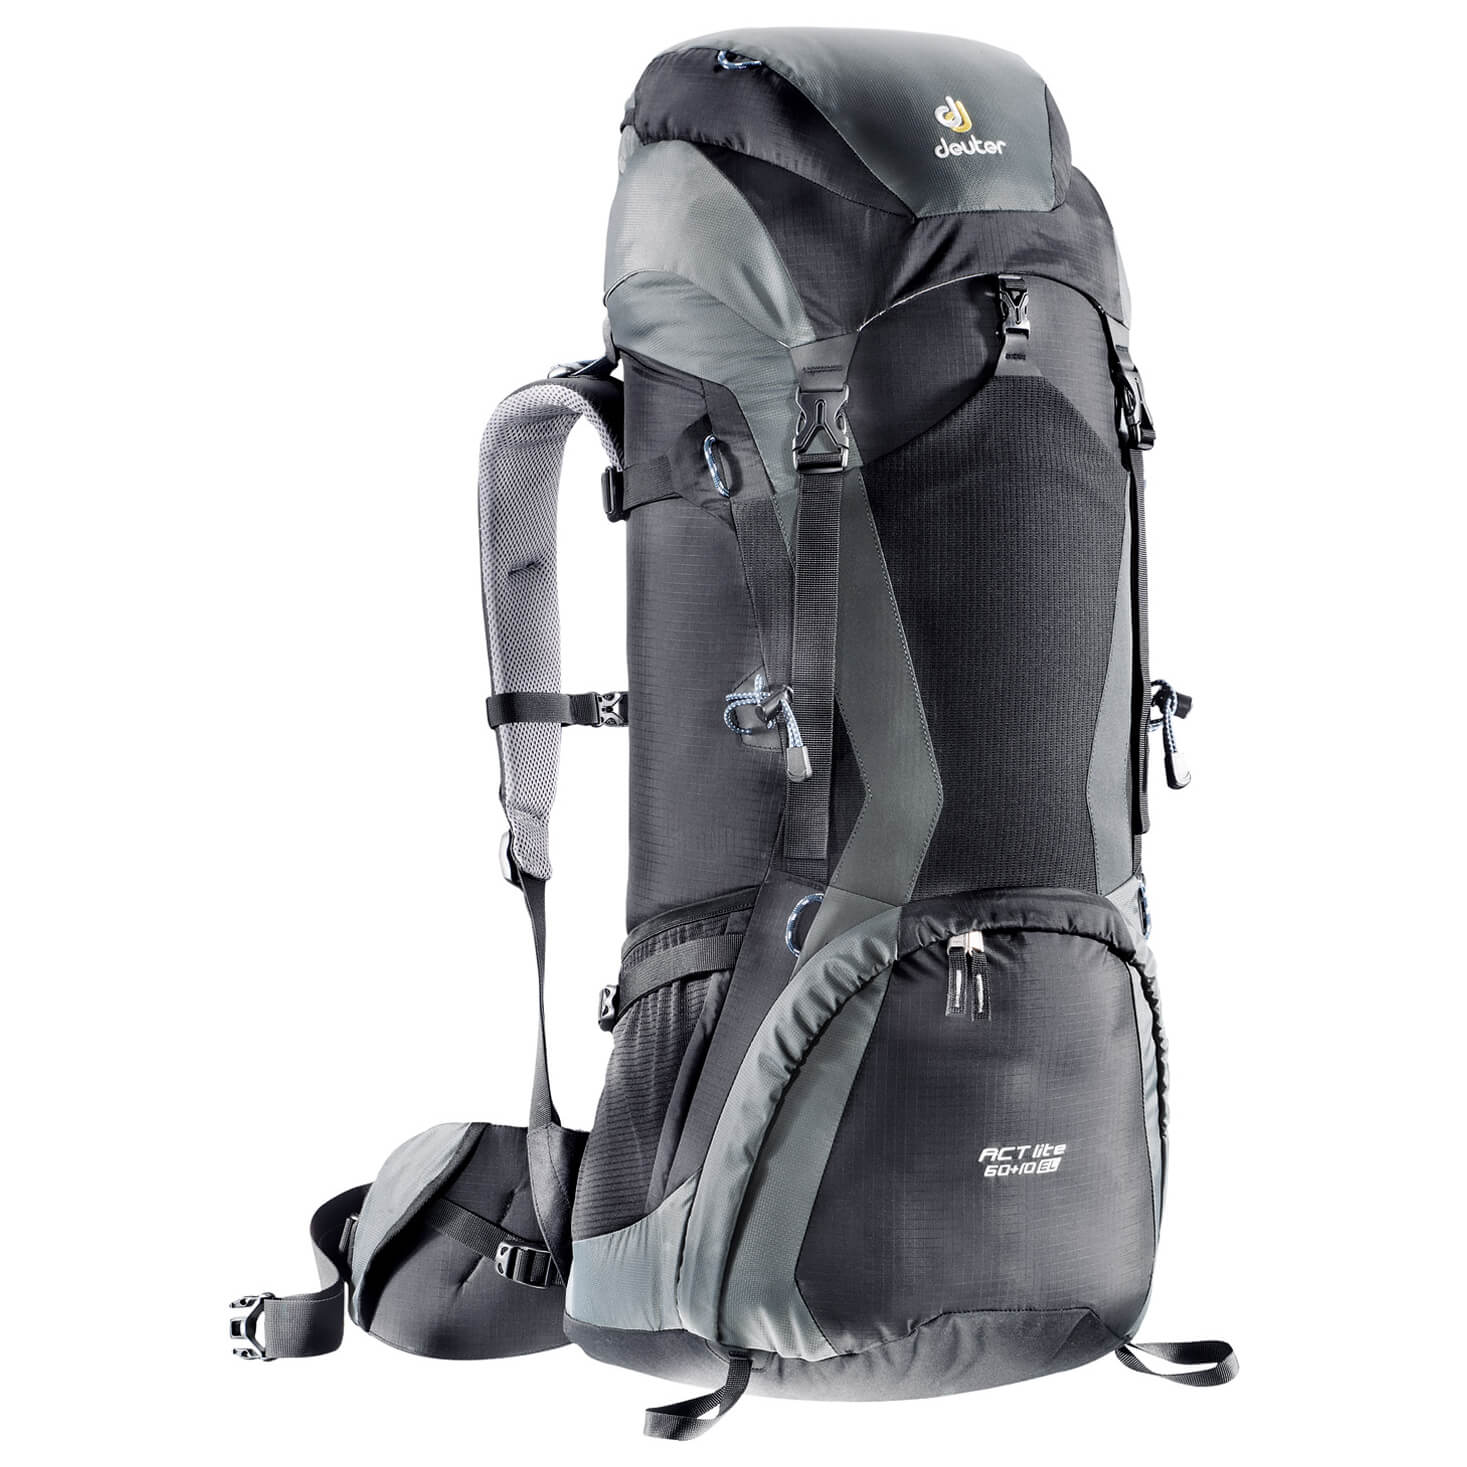 deuter act lite 60 10 el extralong trekkingrucksack online kaufen. Black Bedroom Furniture Sets. Home Design Ideas